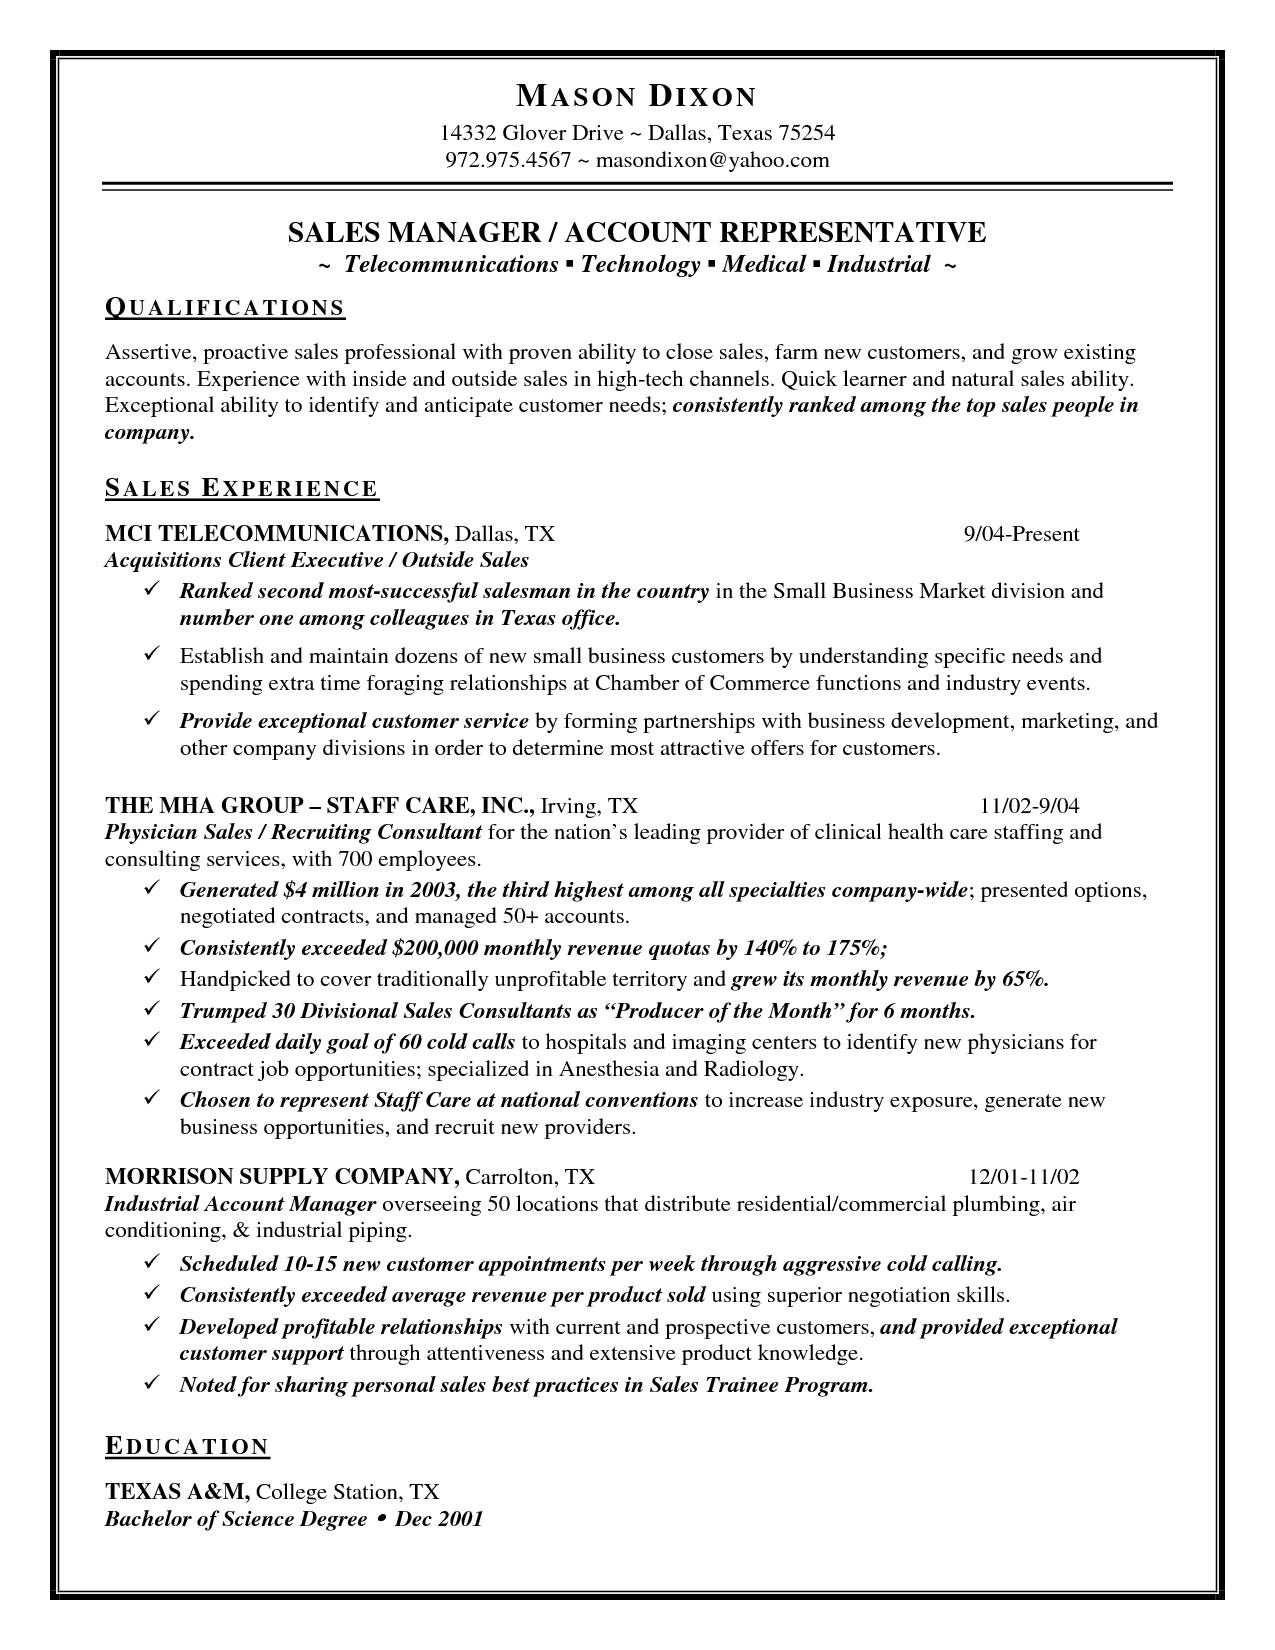 Quick Learner Resume  Inside Sales Resume Sample Mason Dixon